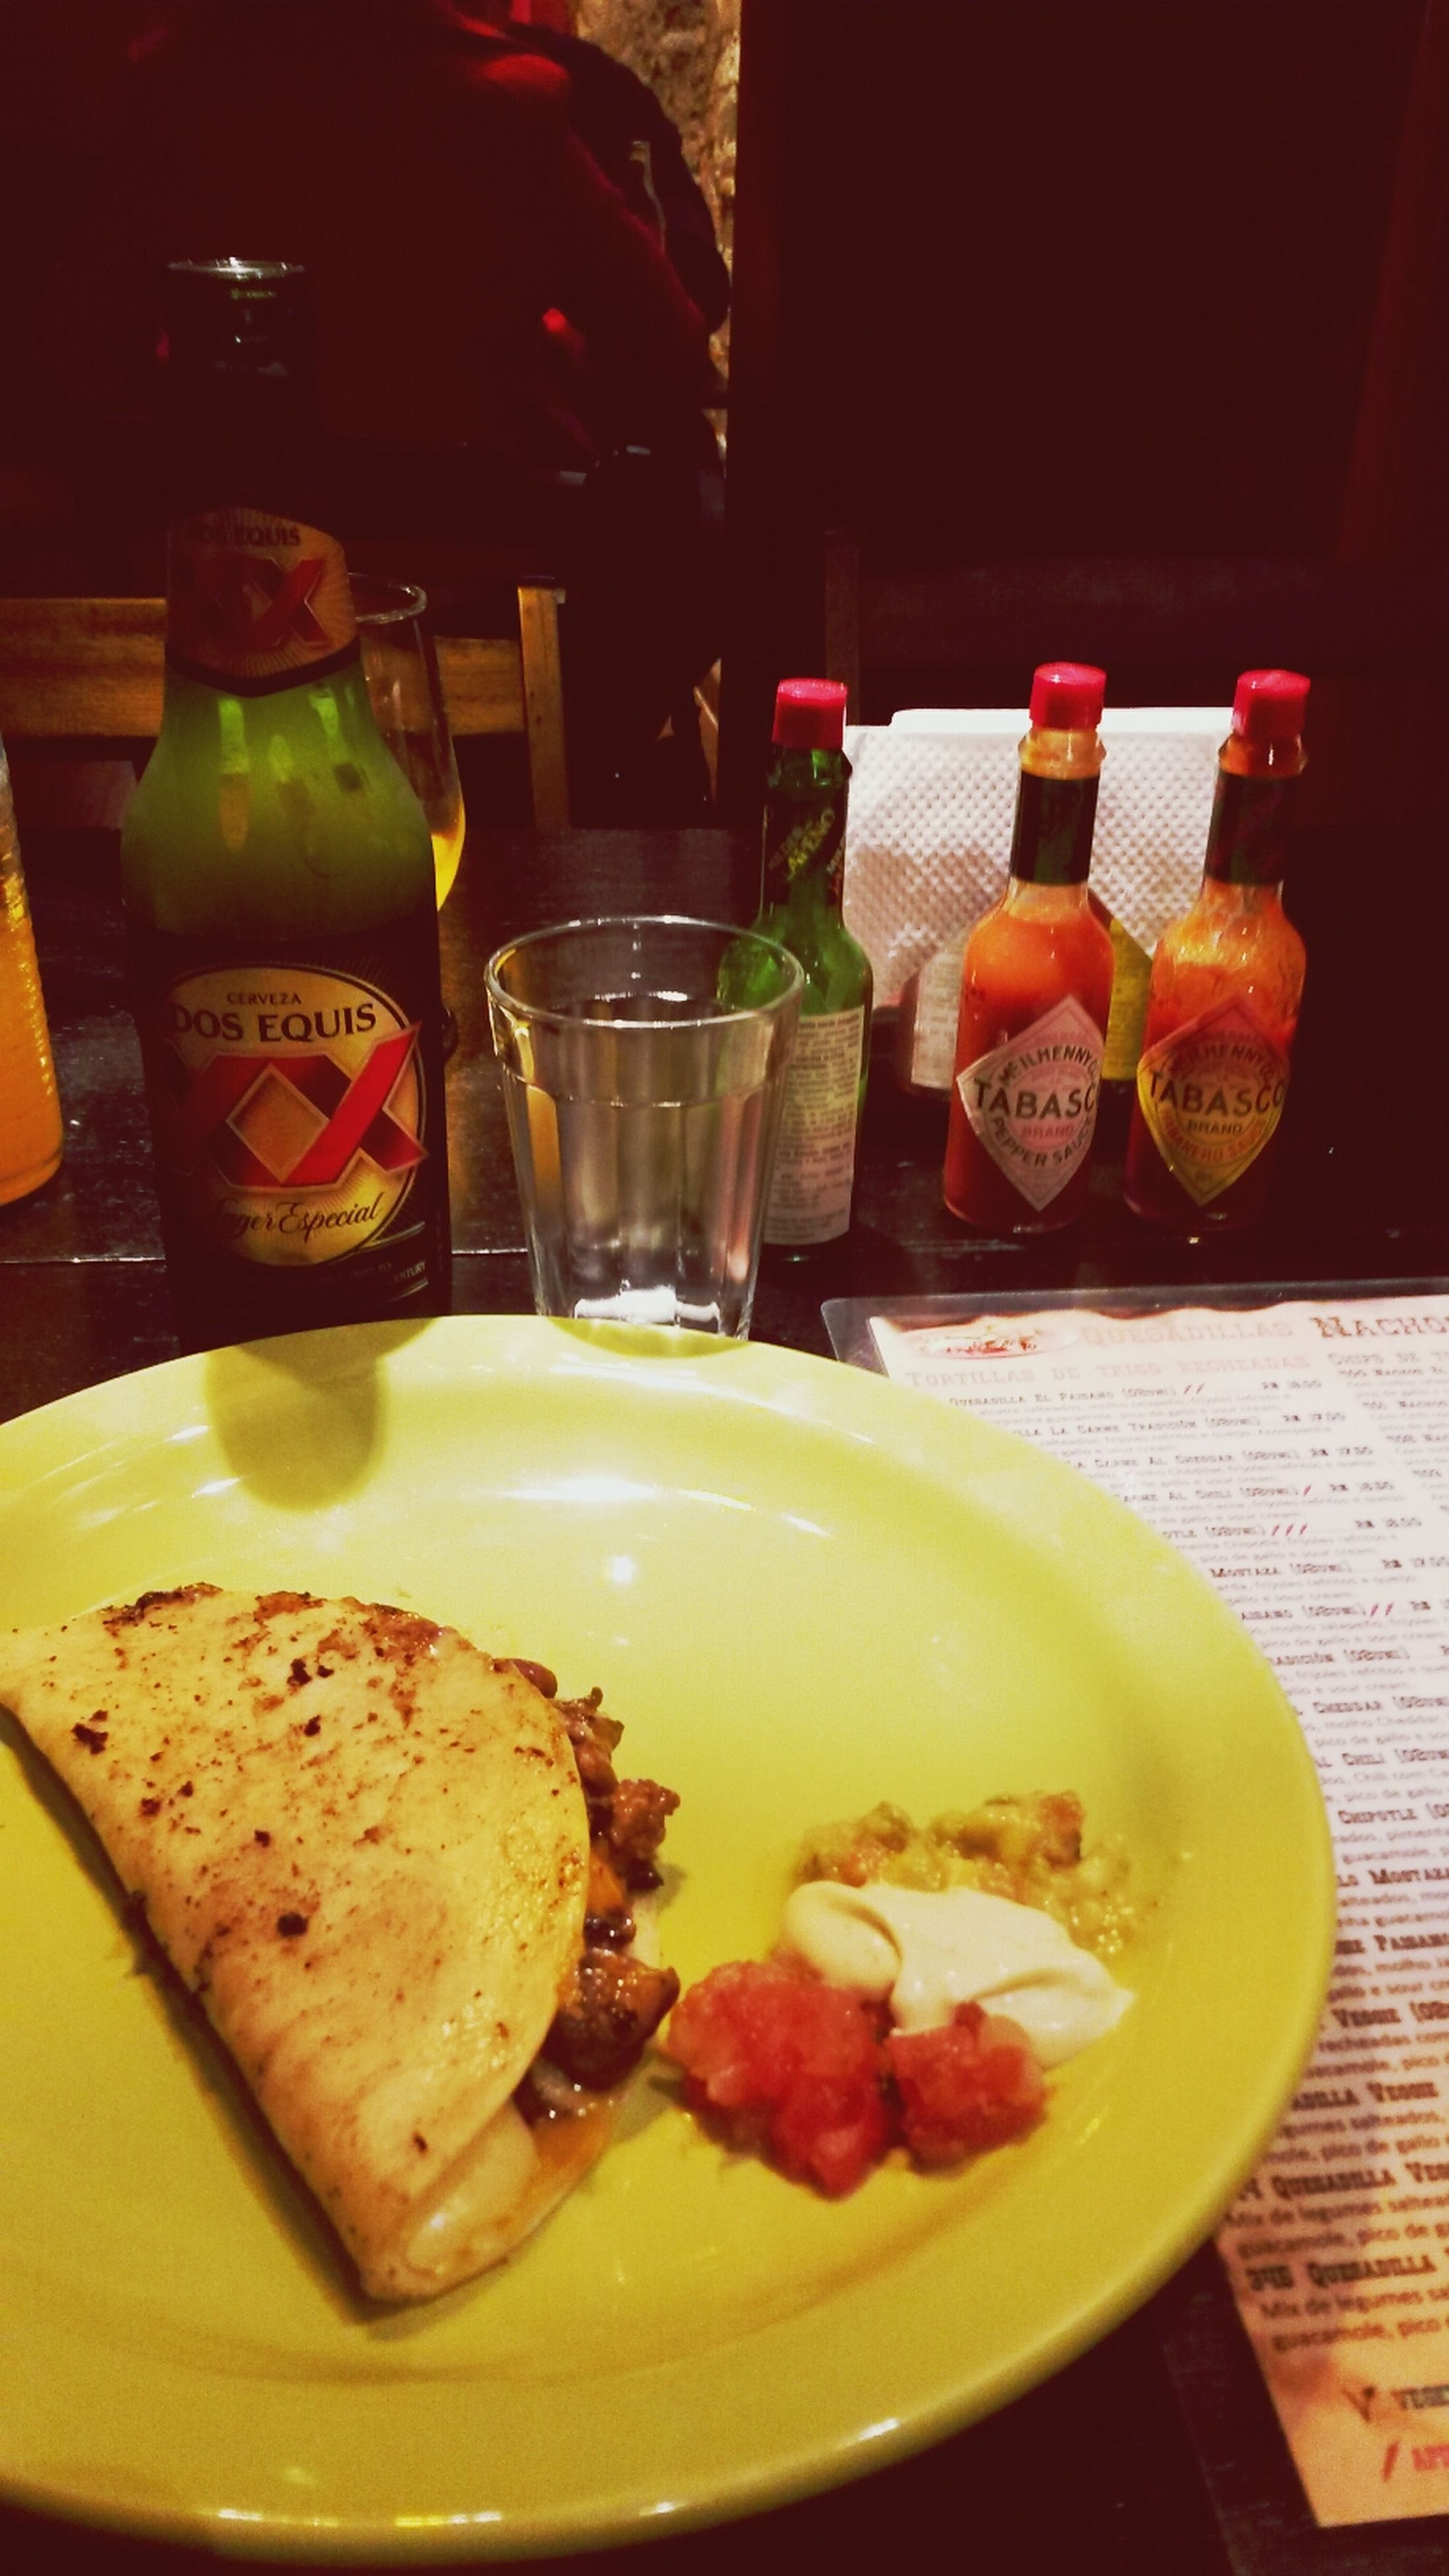 food and drink, indoors, food, freshness, ready-to-eat, still life, table, plate, drink, indulgence, sweet food, refreshment, unhealthy eating, drinking glass, serving size, dessert, slice, close-up, breakfast